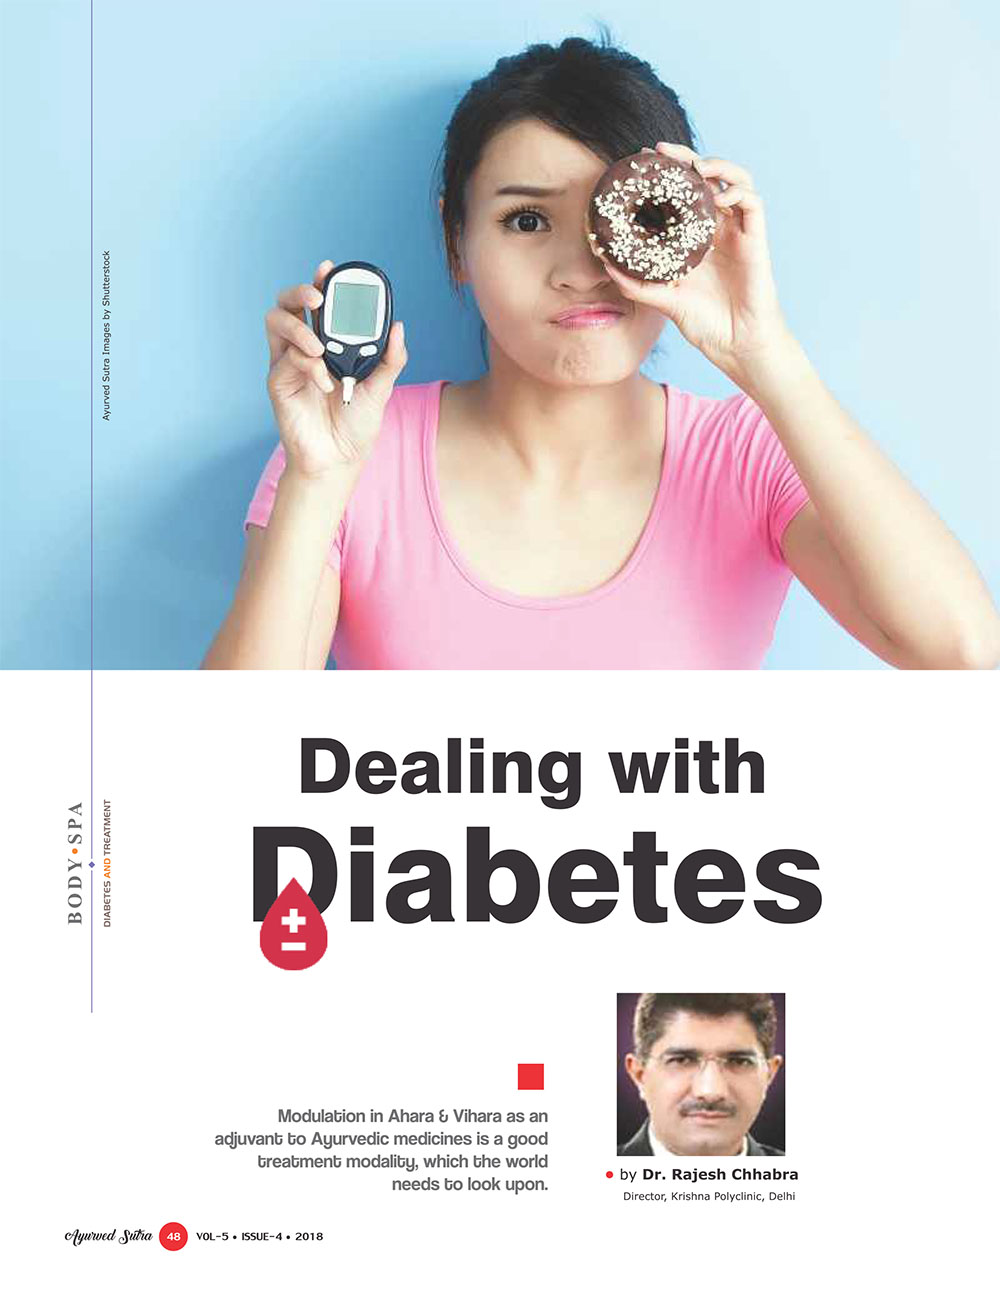 Ayurvedsutra Vol 05 issue 04 50 - Dealing with Diabetes with Ayurveda